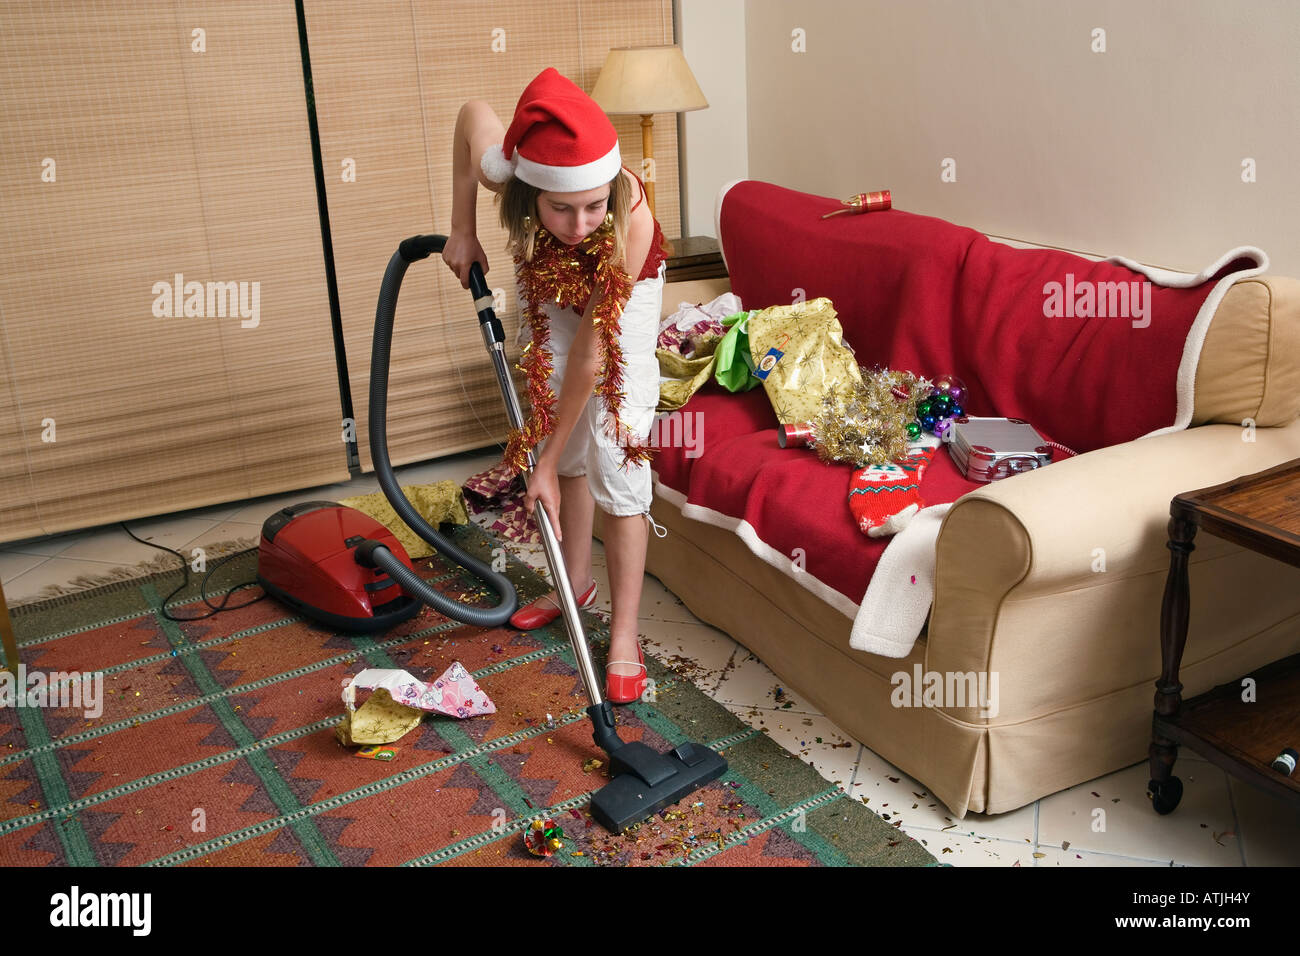 teenage girl vacuuming after Christmas party Stock Photo, Royalty ...